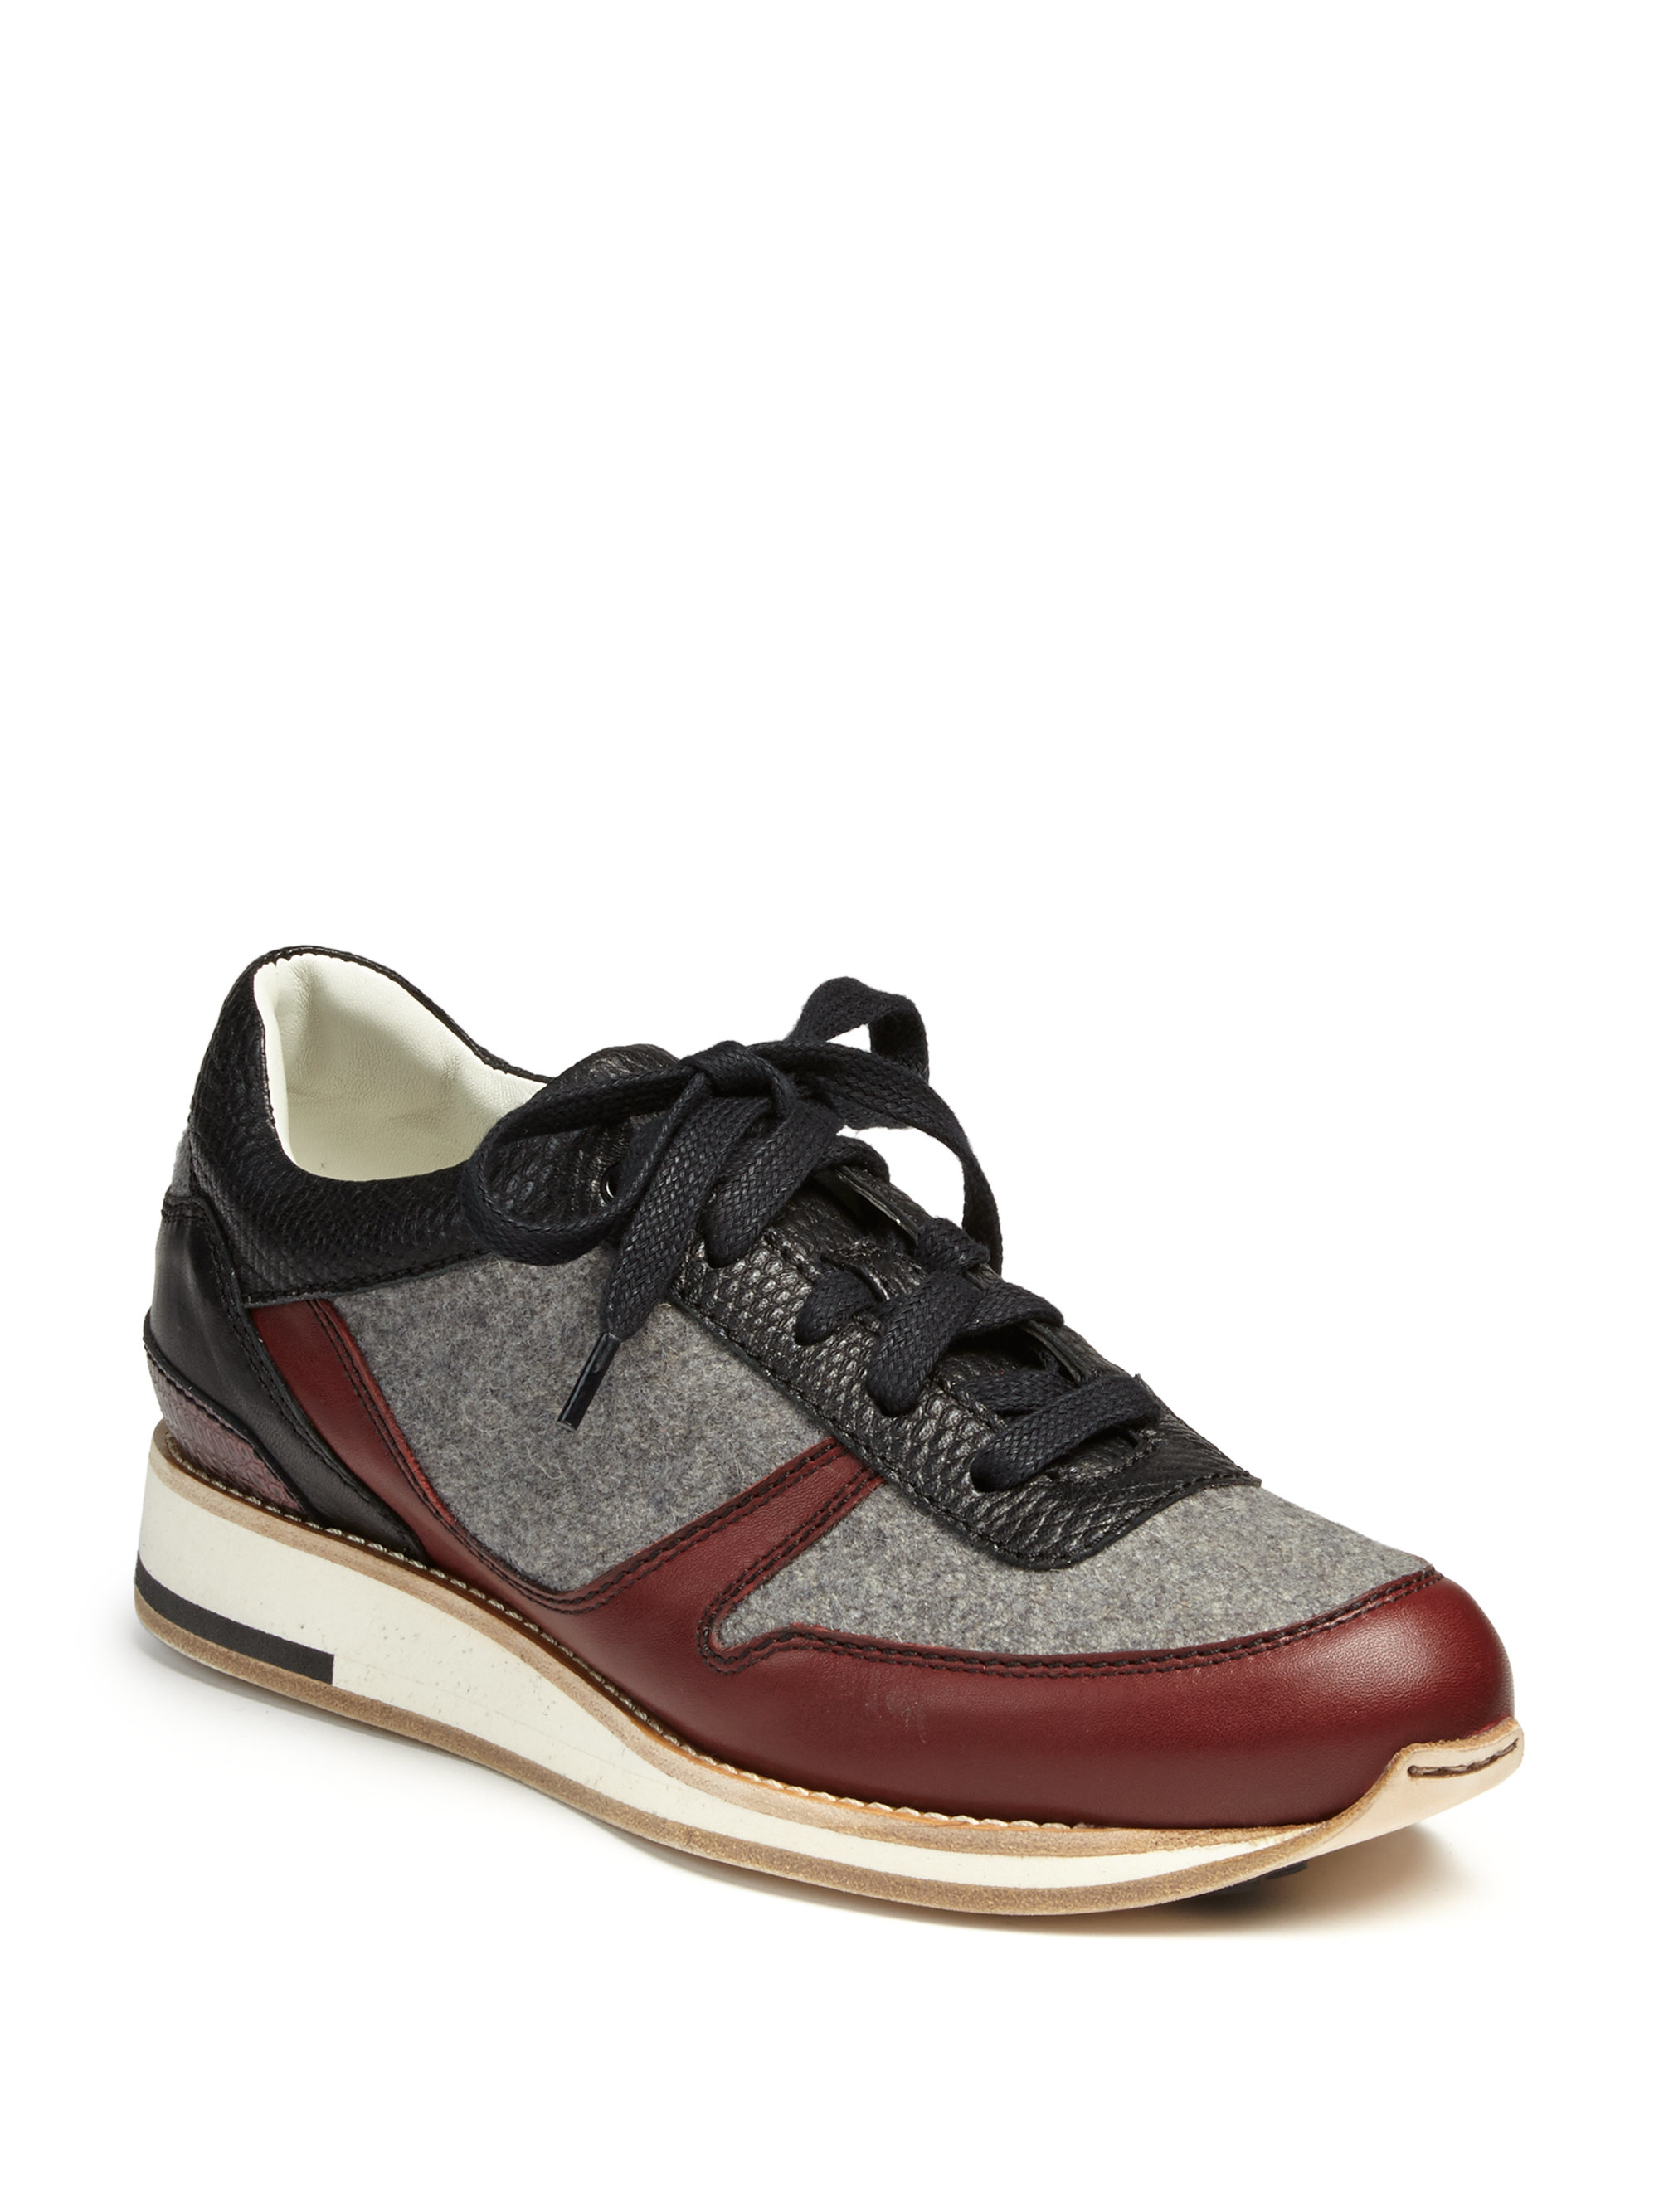 Lanvin Running Shoes